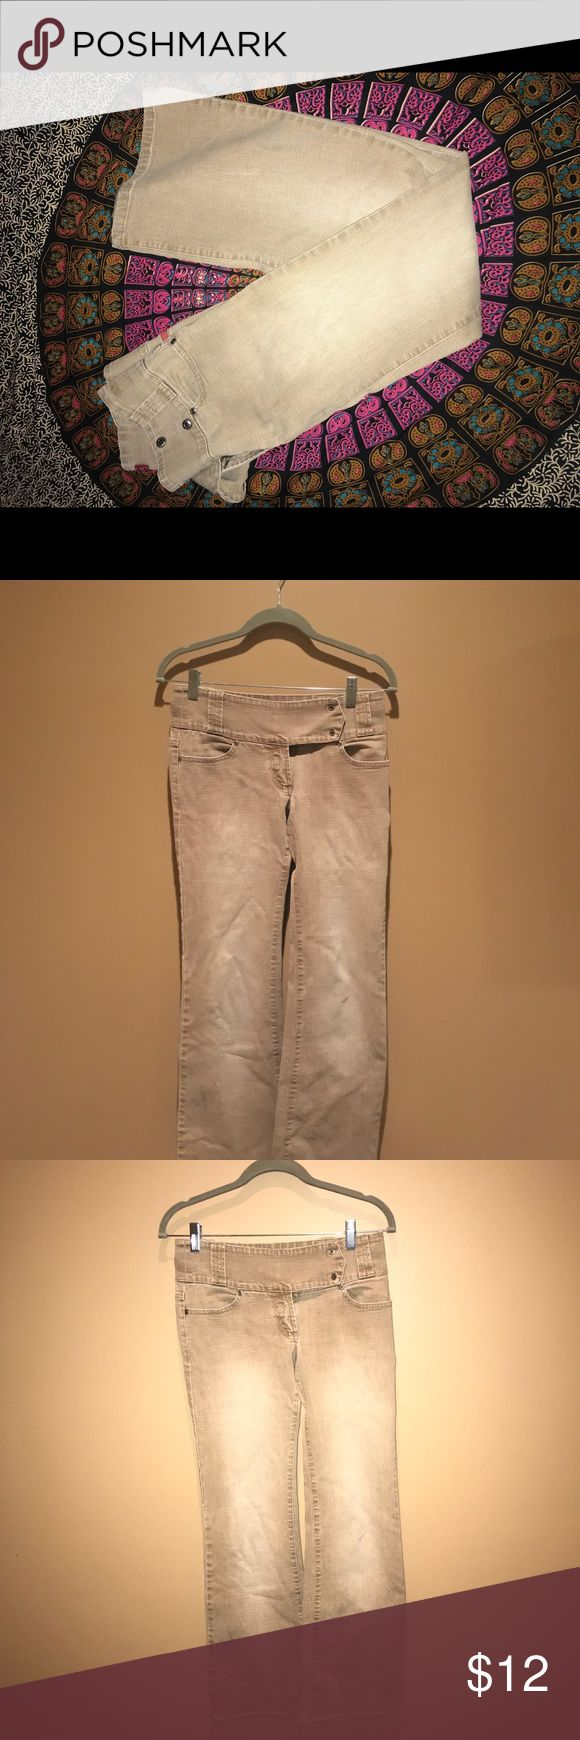 Straight leg/Flair High-wasted Pants These are a khaki/Denim mix pants. They are straight leg with a slight flair at the end. Good for business casual looks! Size 5! Comment below any questions! Hot Kiss Pants Boot Cut & Flare